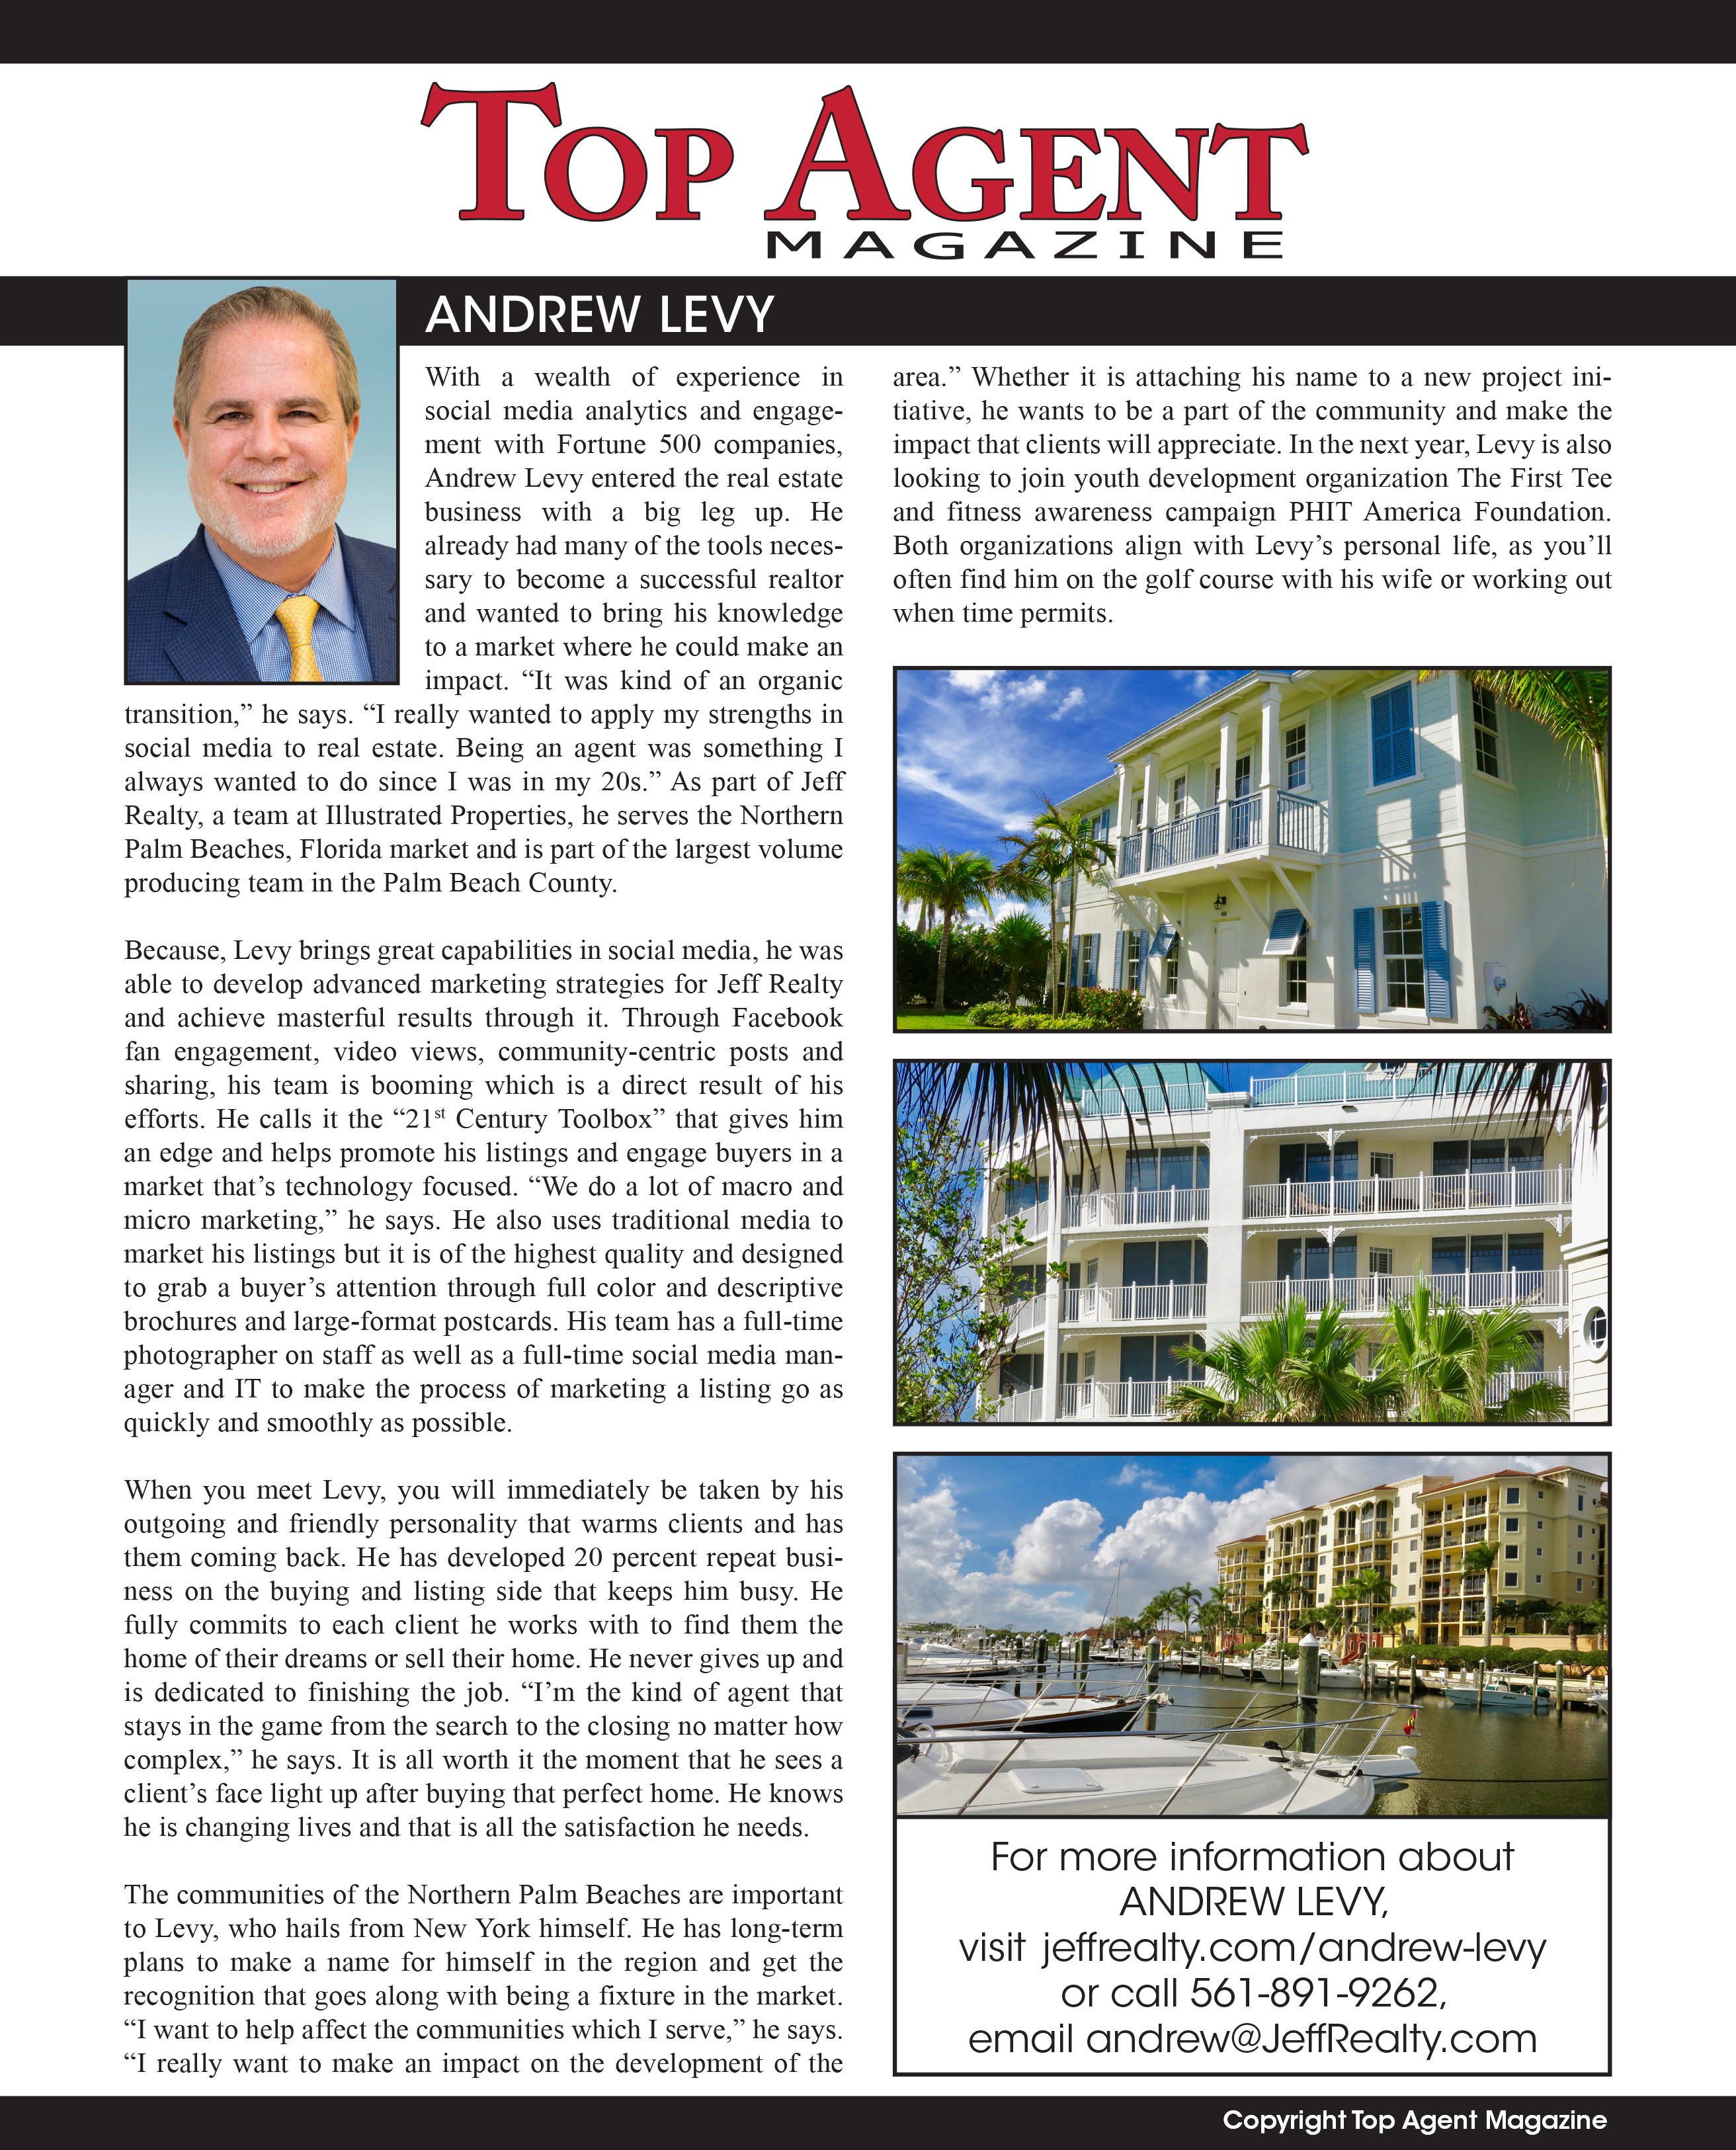 Andrew Levy, Real Estate West Palm Beach